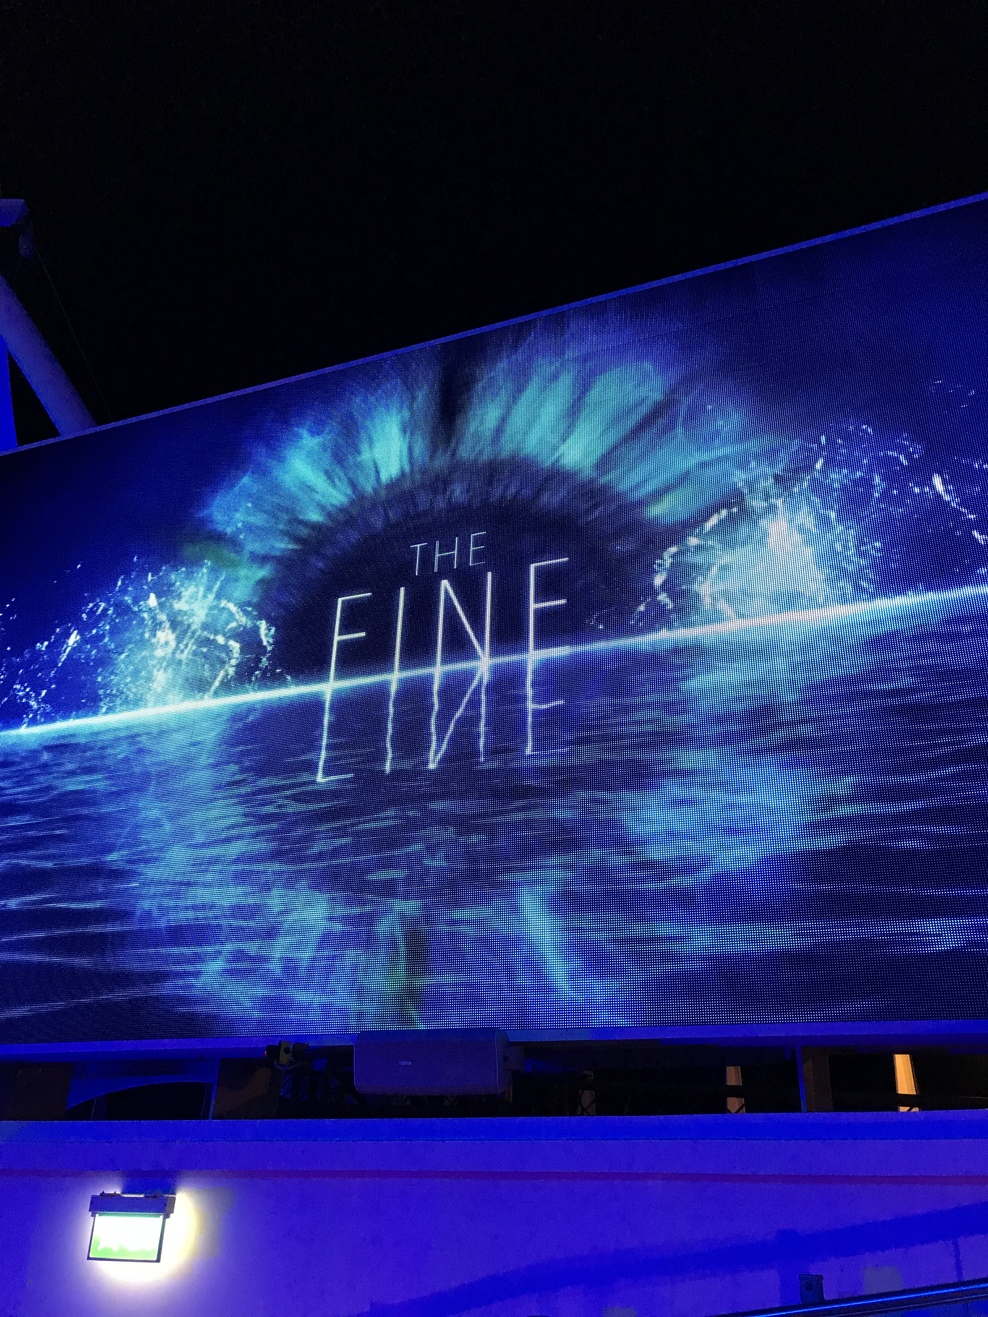 The fine line—-really good